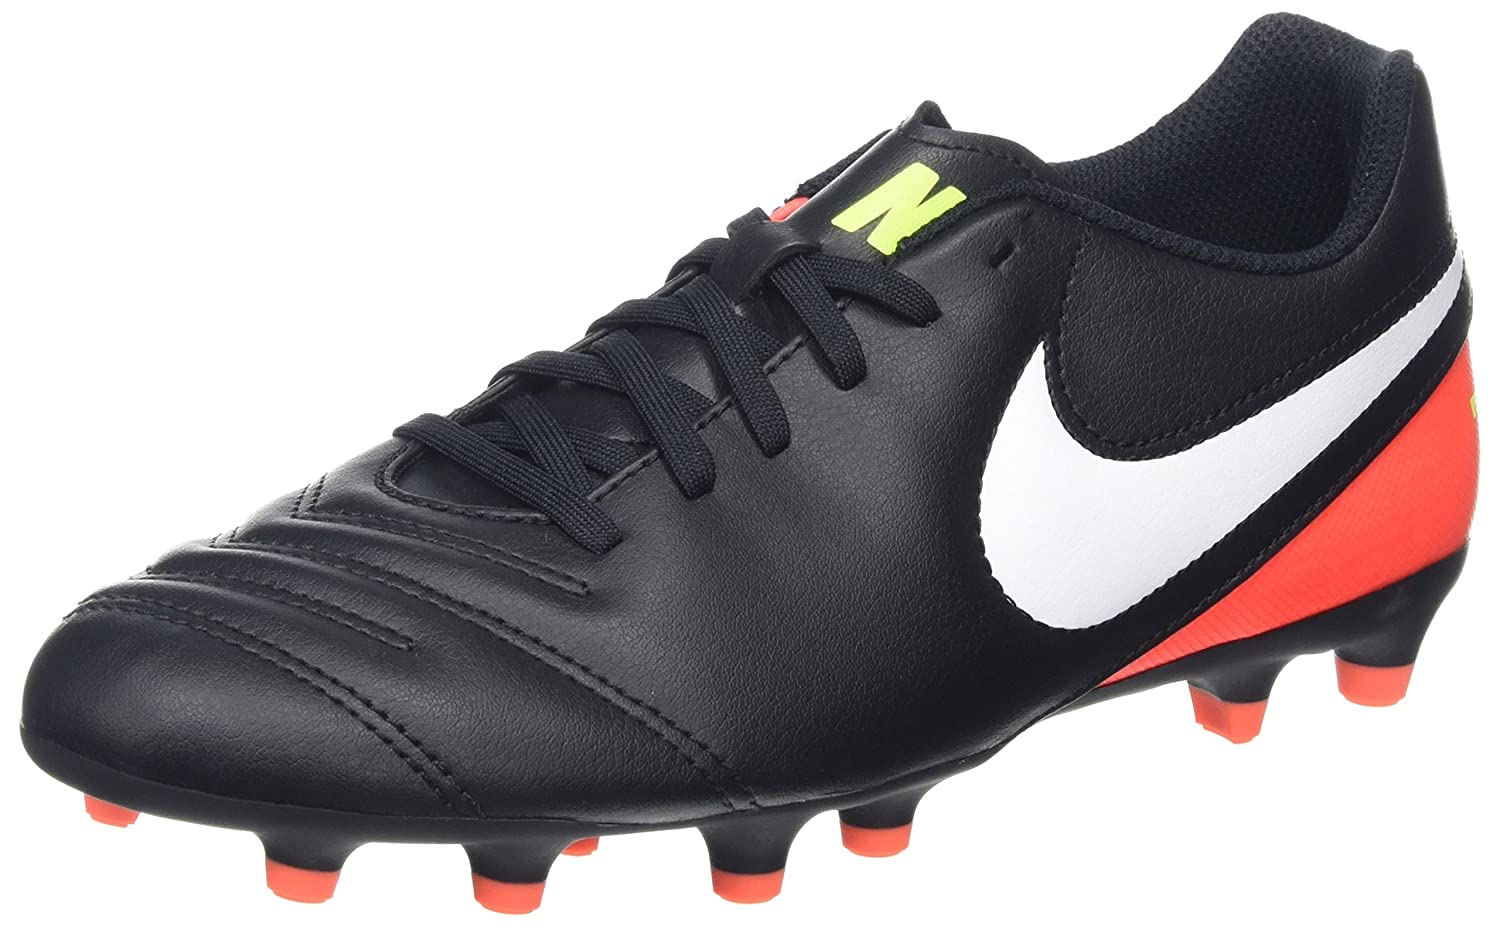 NIKE Men's Tiempo Rio III FG Soccer Cleat B01DLE1IAW 9 D(M) US